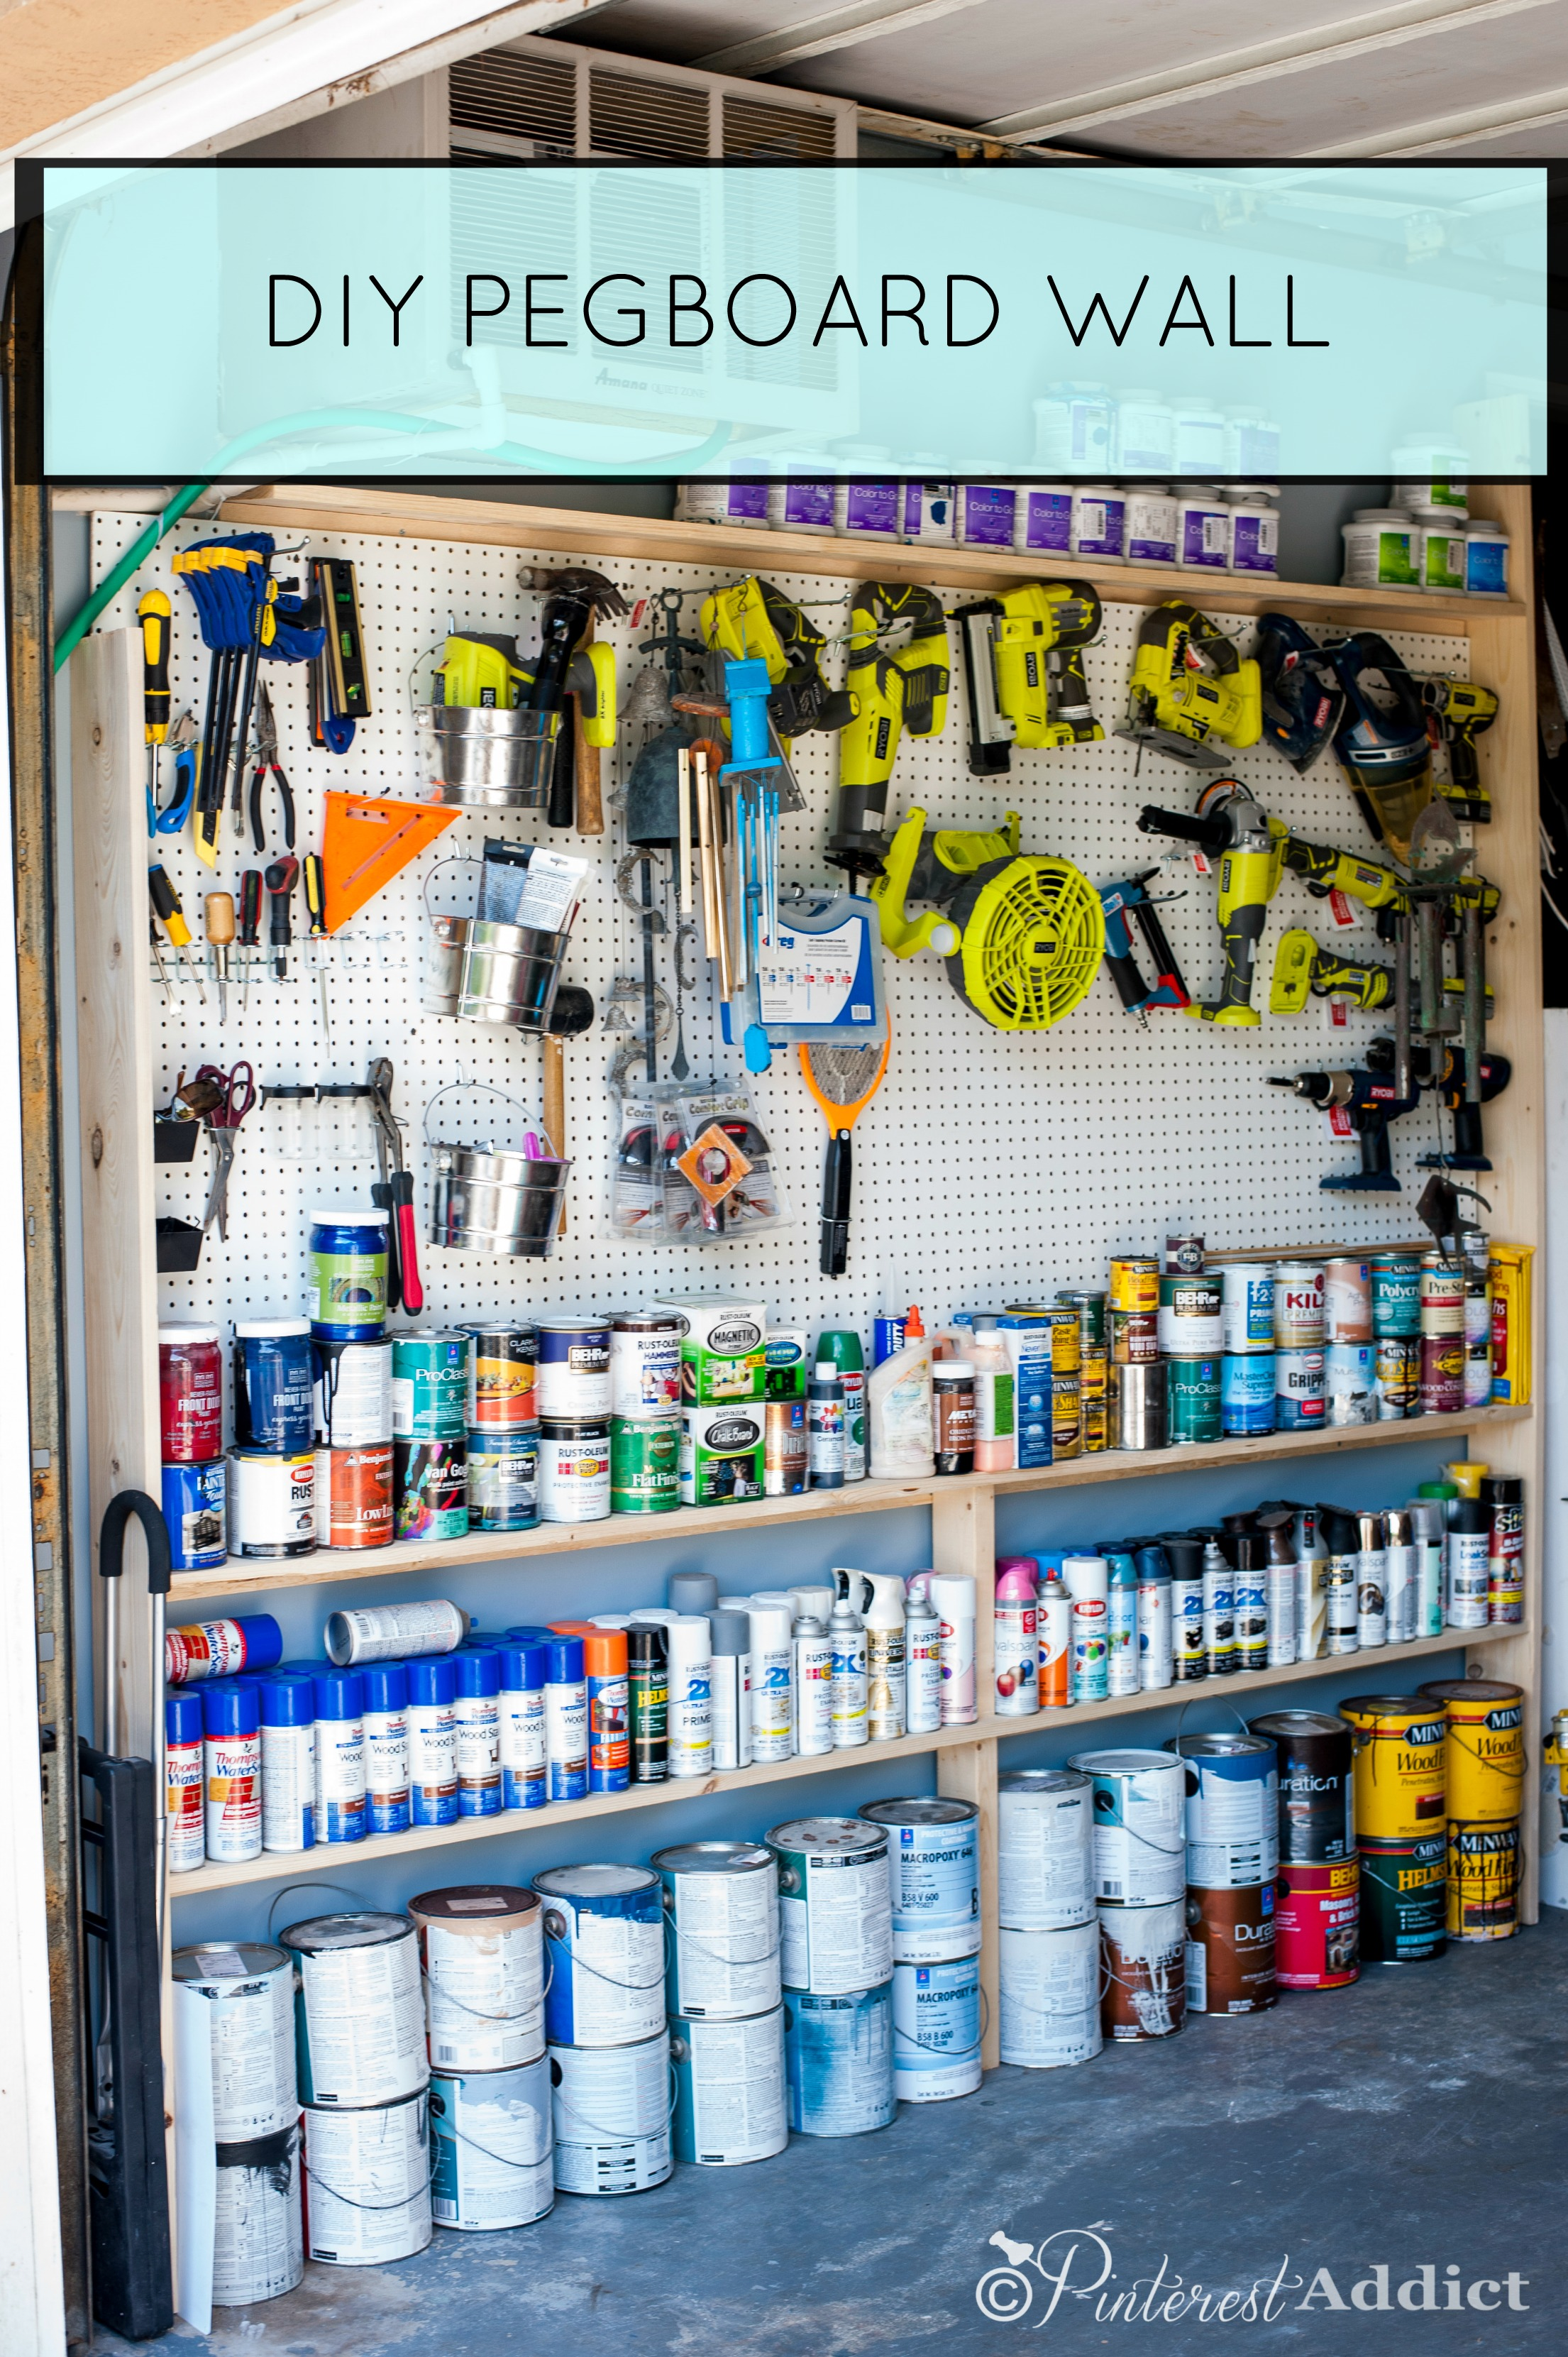 install map them where everyday also to aesthetics tool art ease go real tools organization on life choose for want hooks you pegboard board hang out and use closeup of peg woman the diy in garage